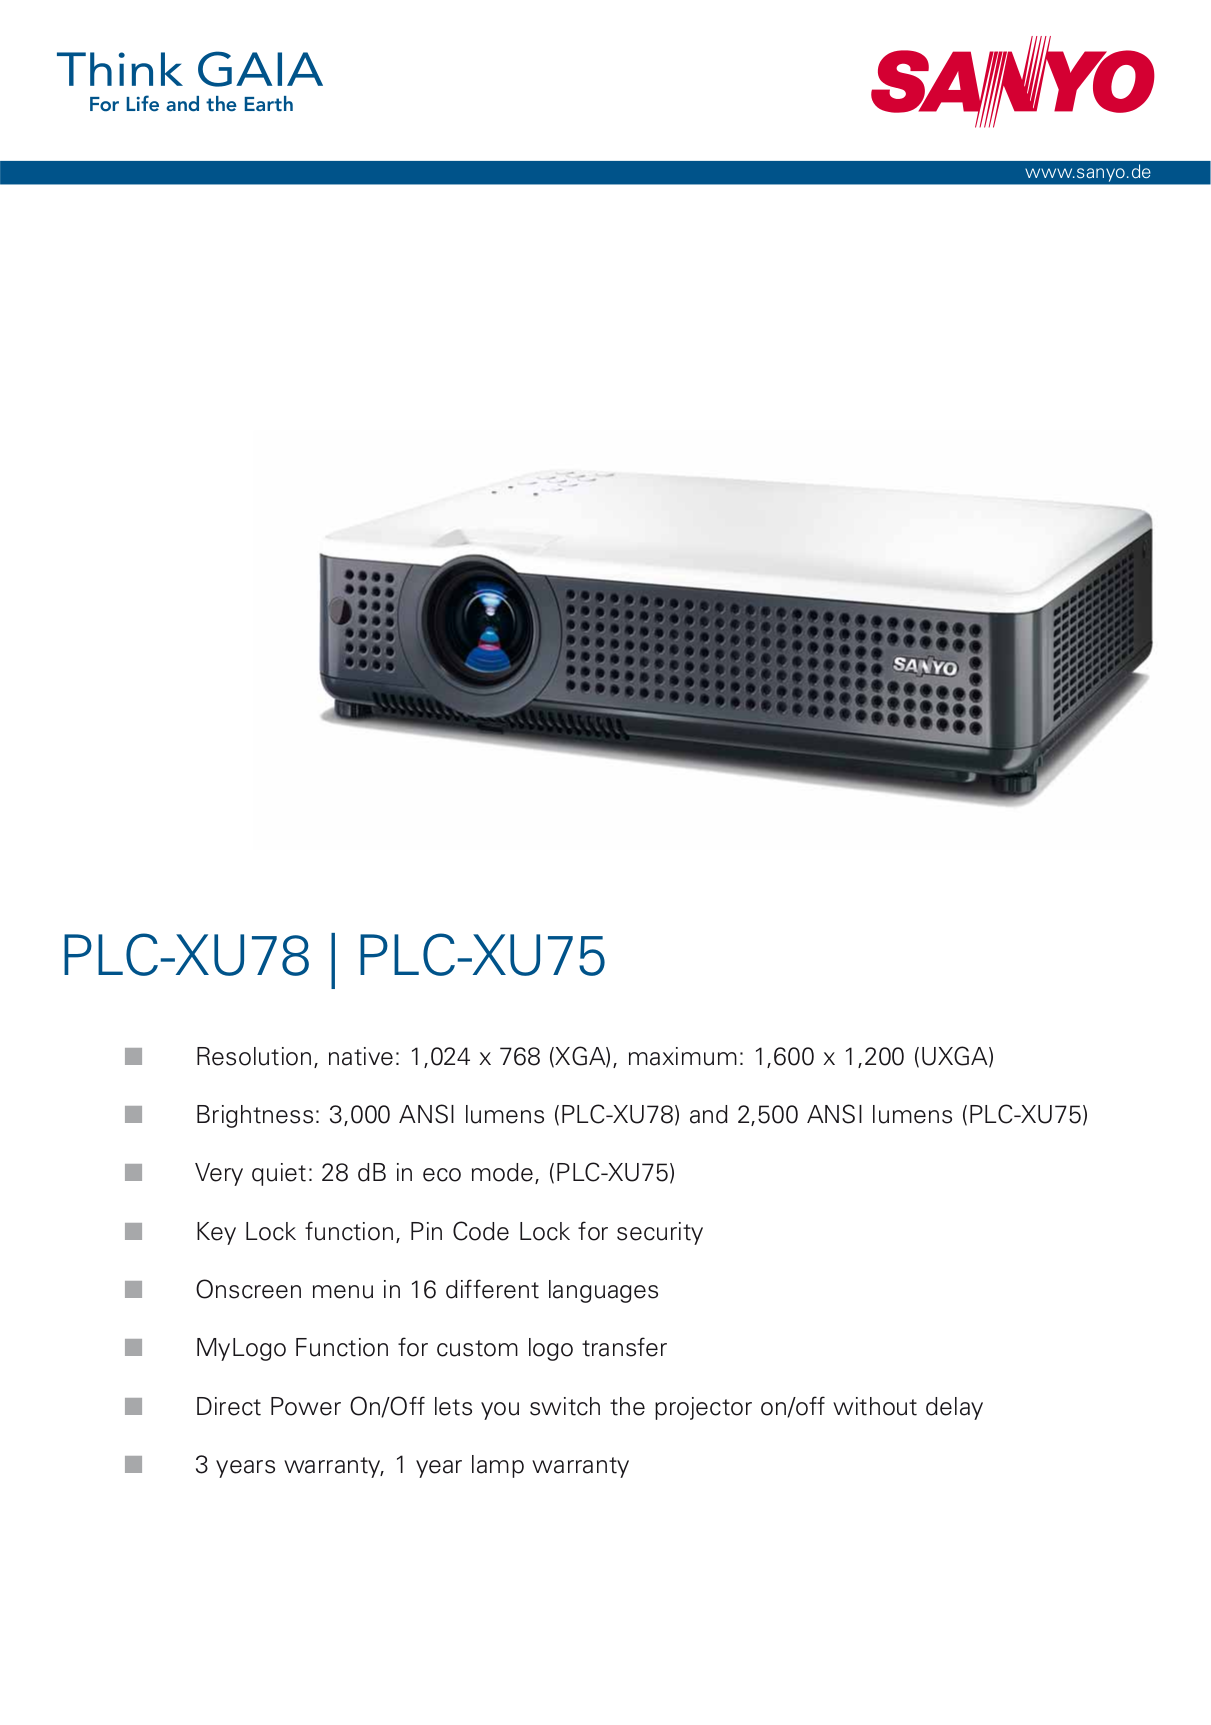 download free pdf for sanyo plc xu78 projector manual rh umlib com Sanyo Projector Pro X Manual Sanyo Projector Pro X Manual